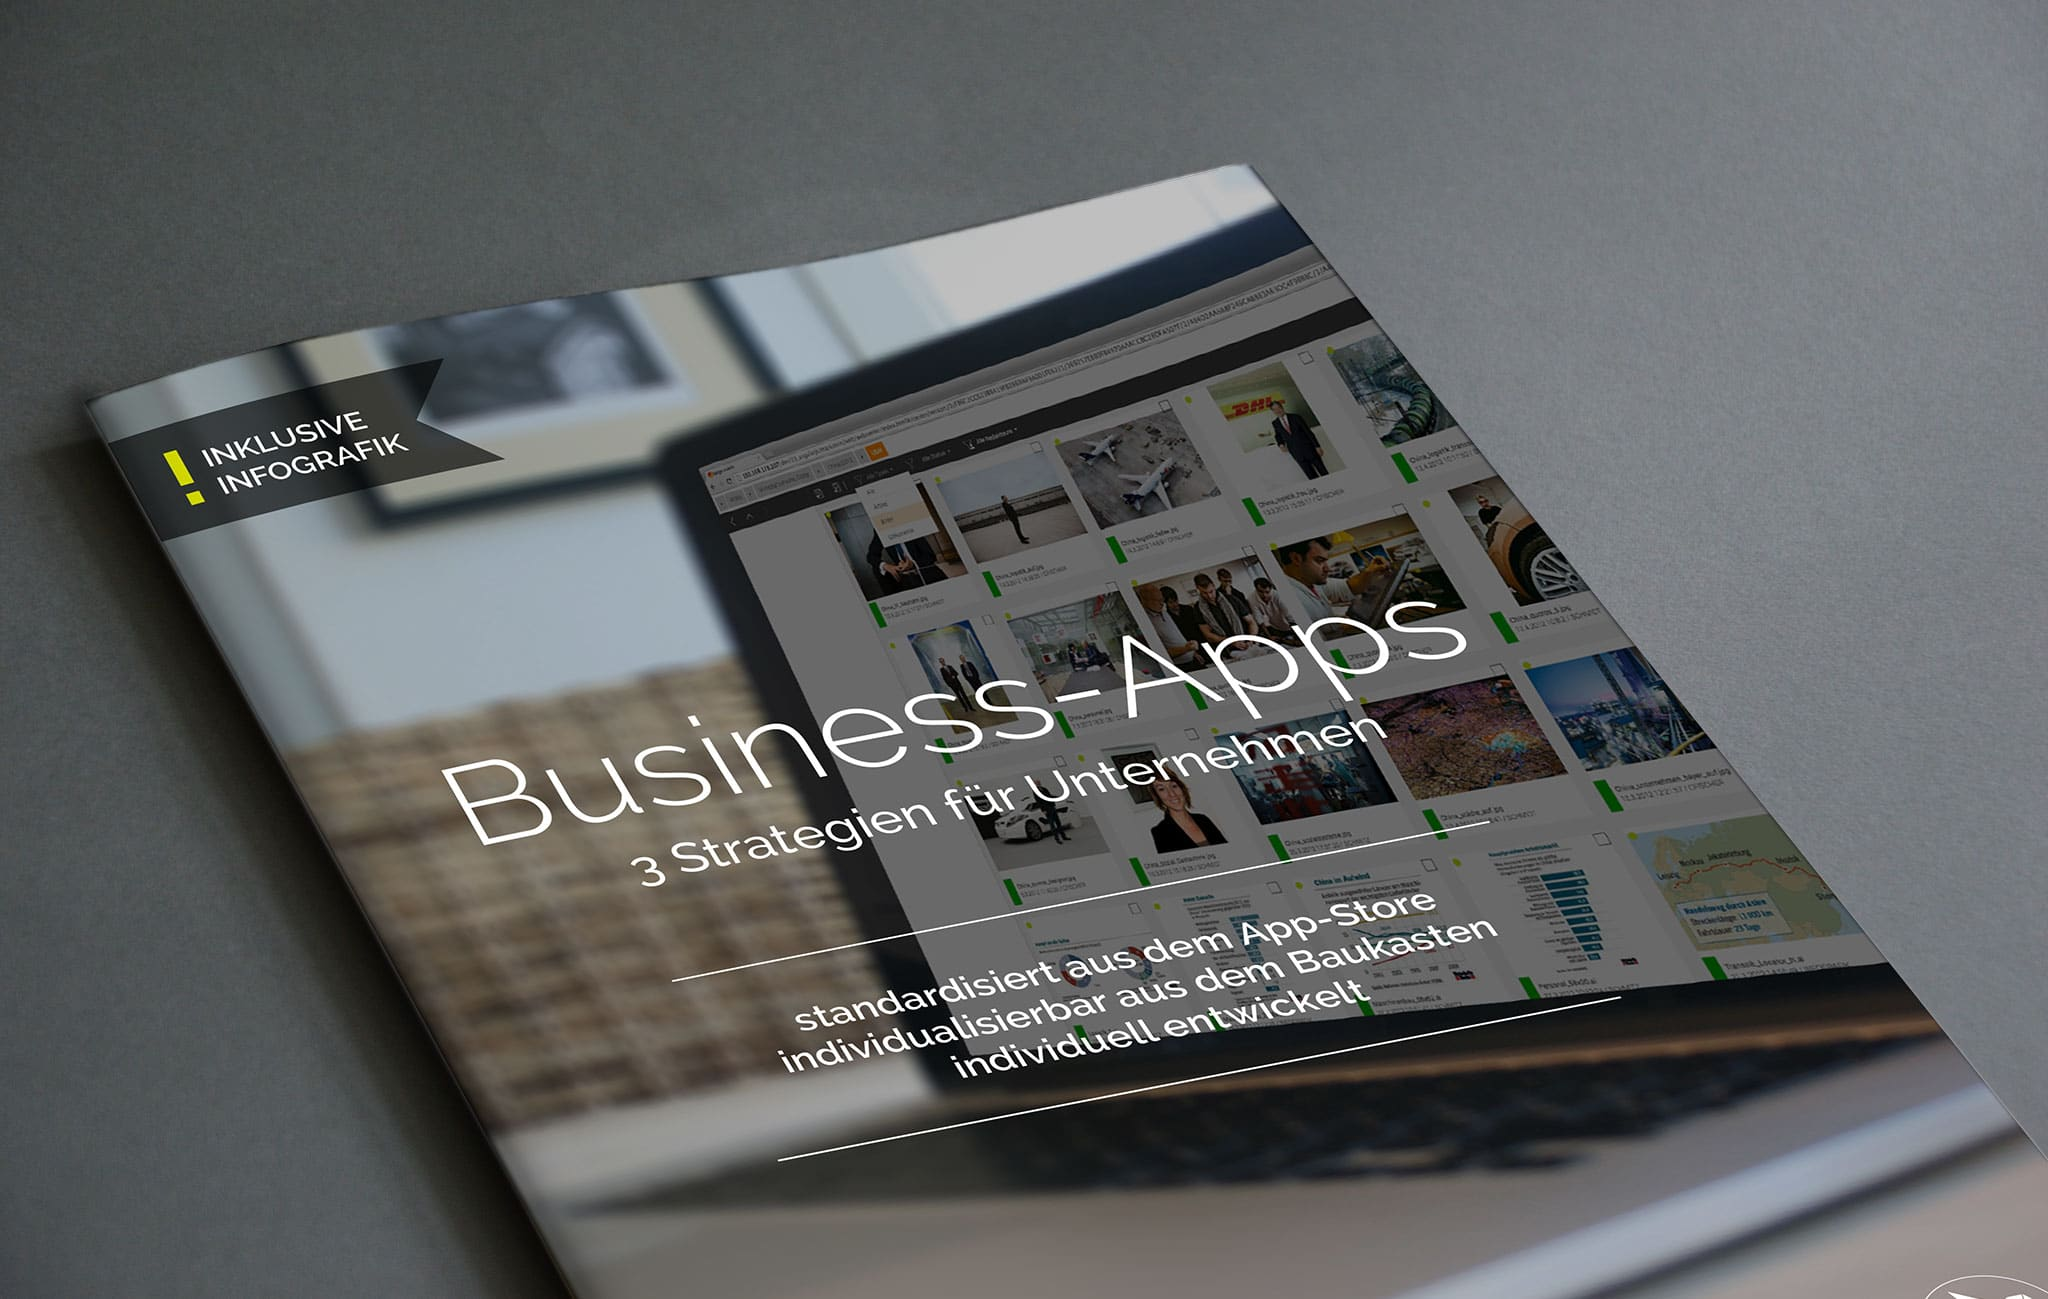 Business-Apps Publikation